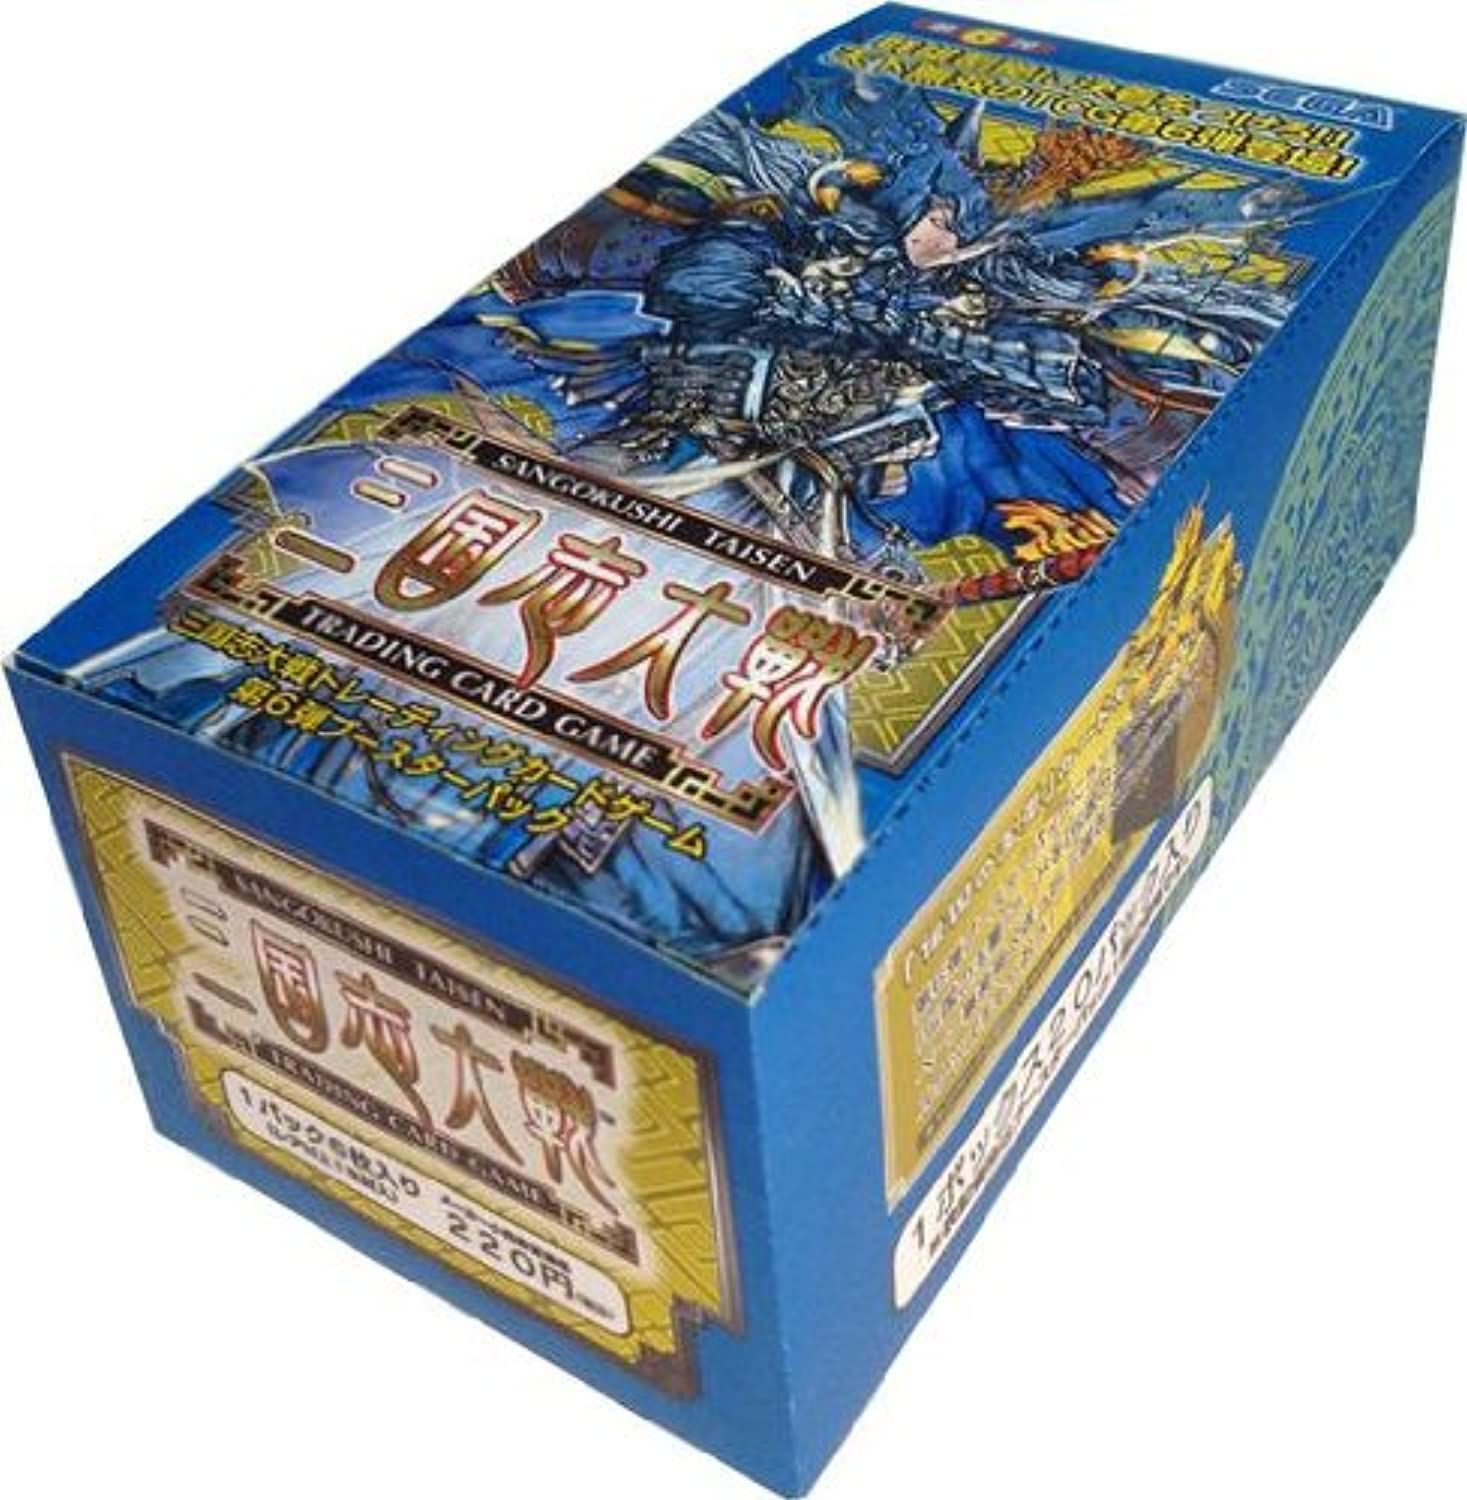 mejor moda Sangokushi Taisen Trading Coched Coched Coched Juego sixth booster pack box (japan import)  calidad de primera clase